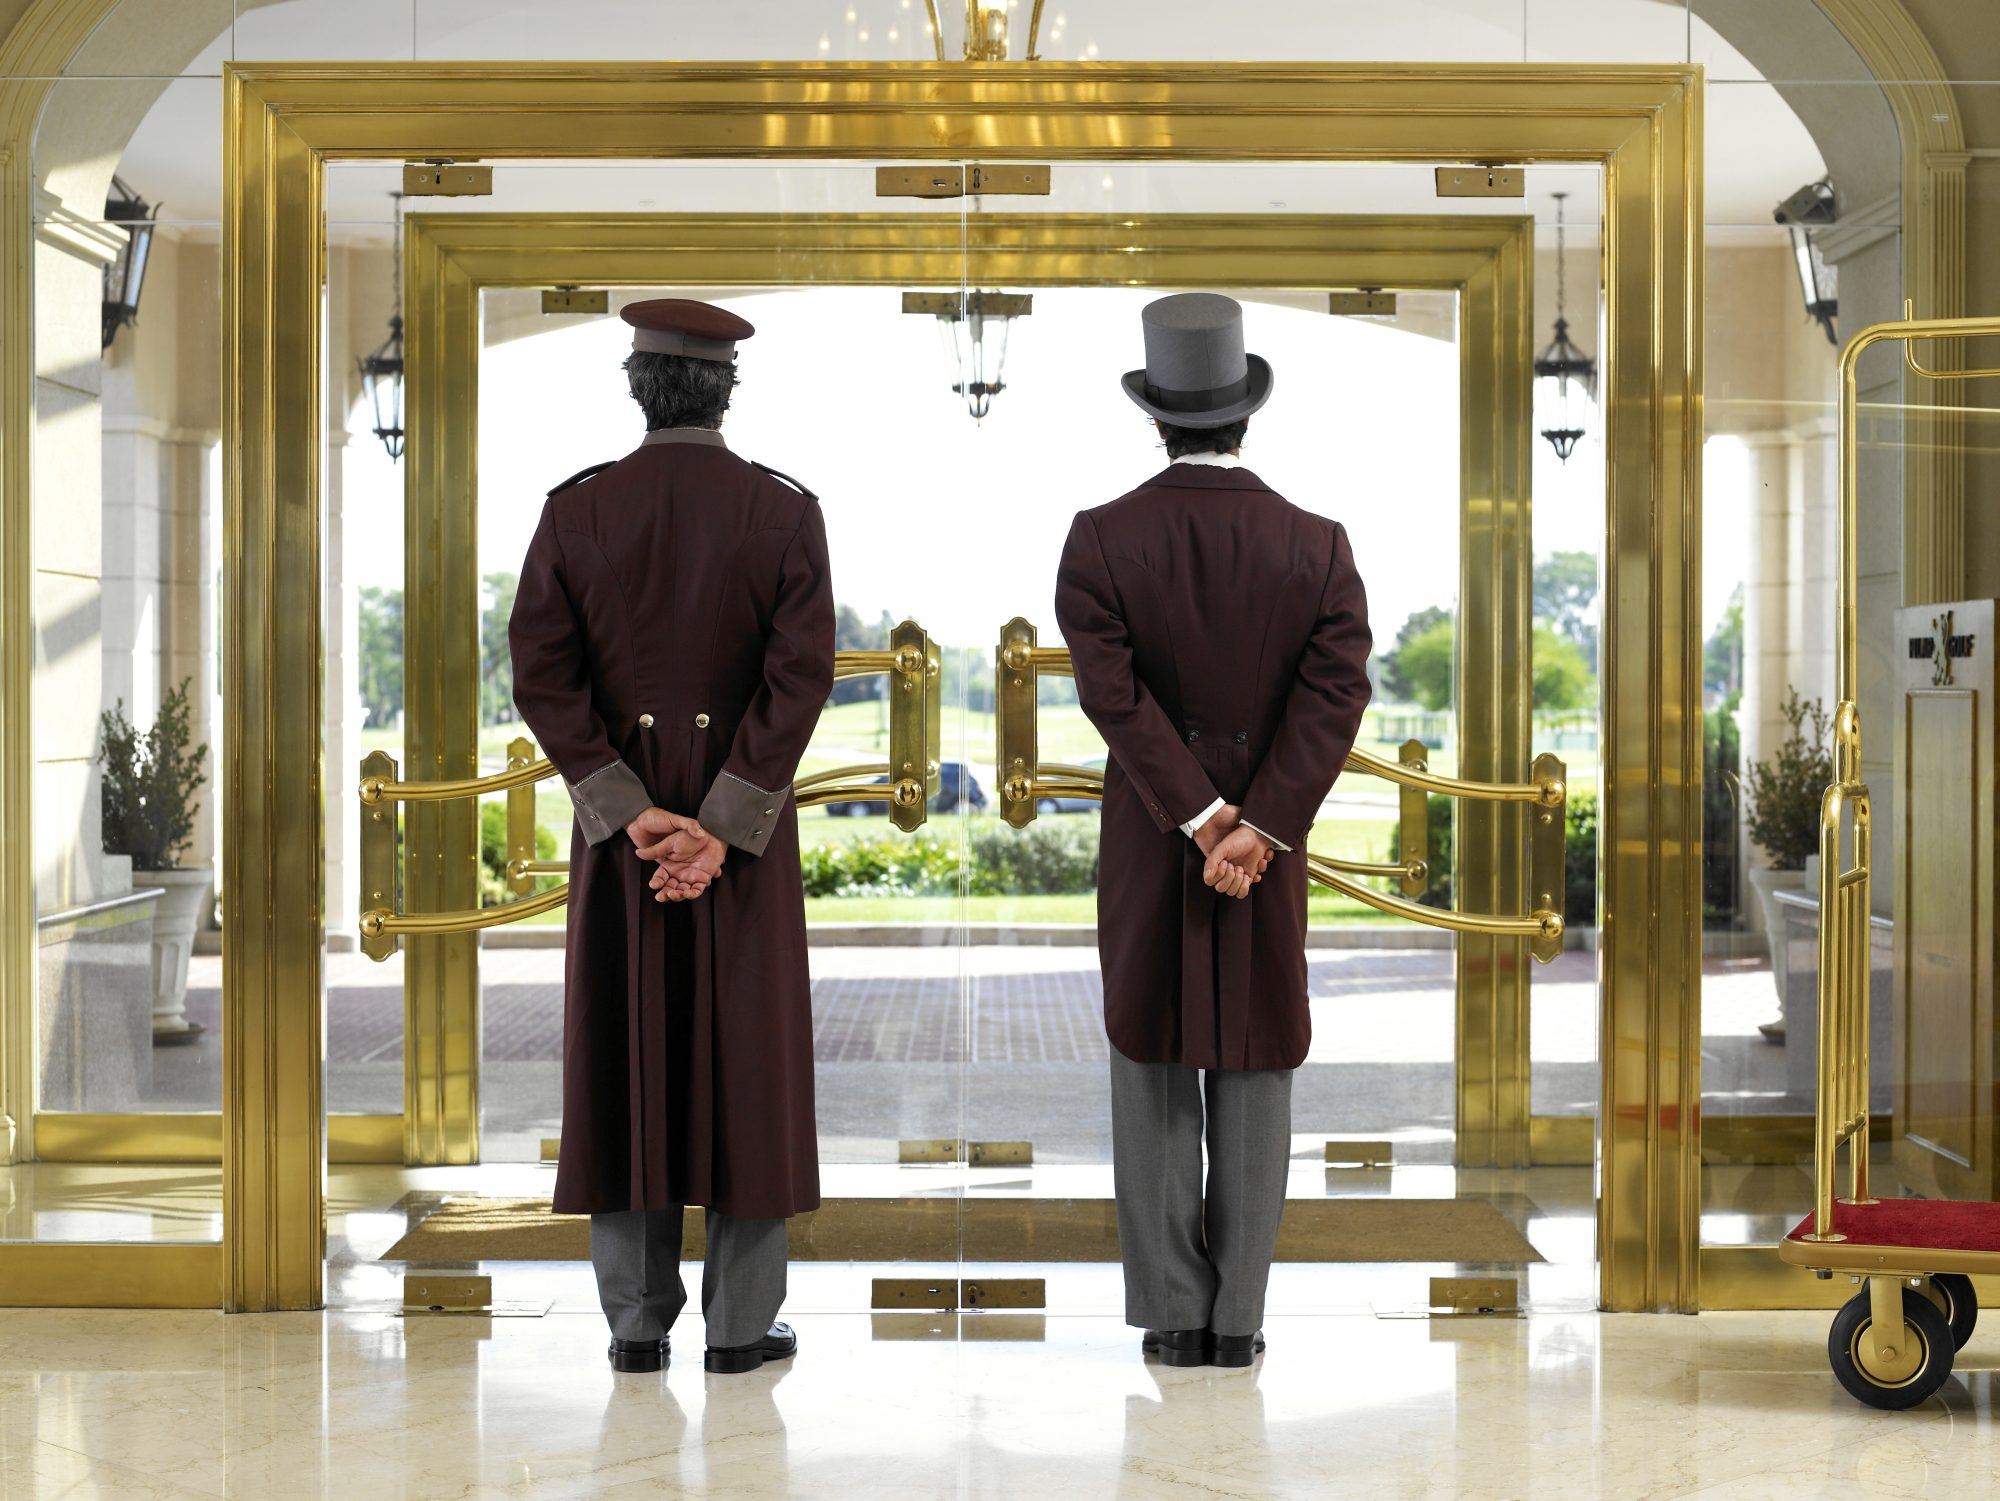 Concierge and bellboy standing at hotel entrance